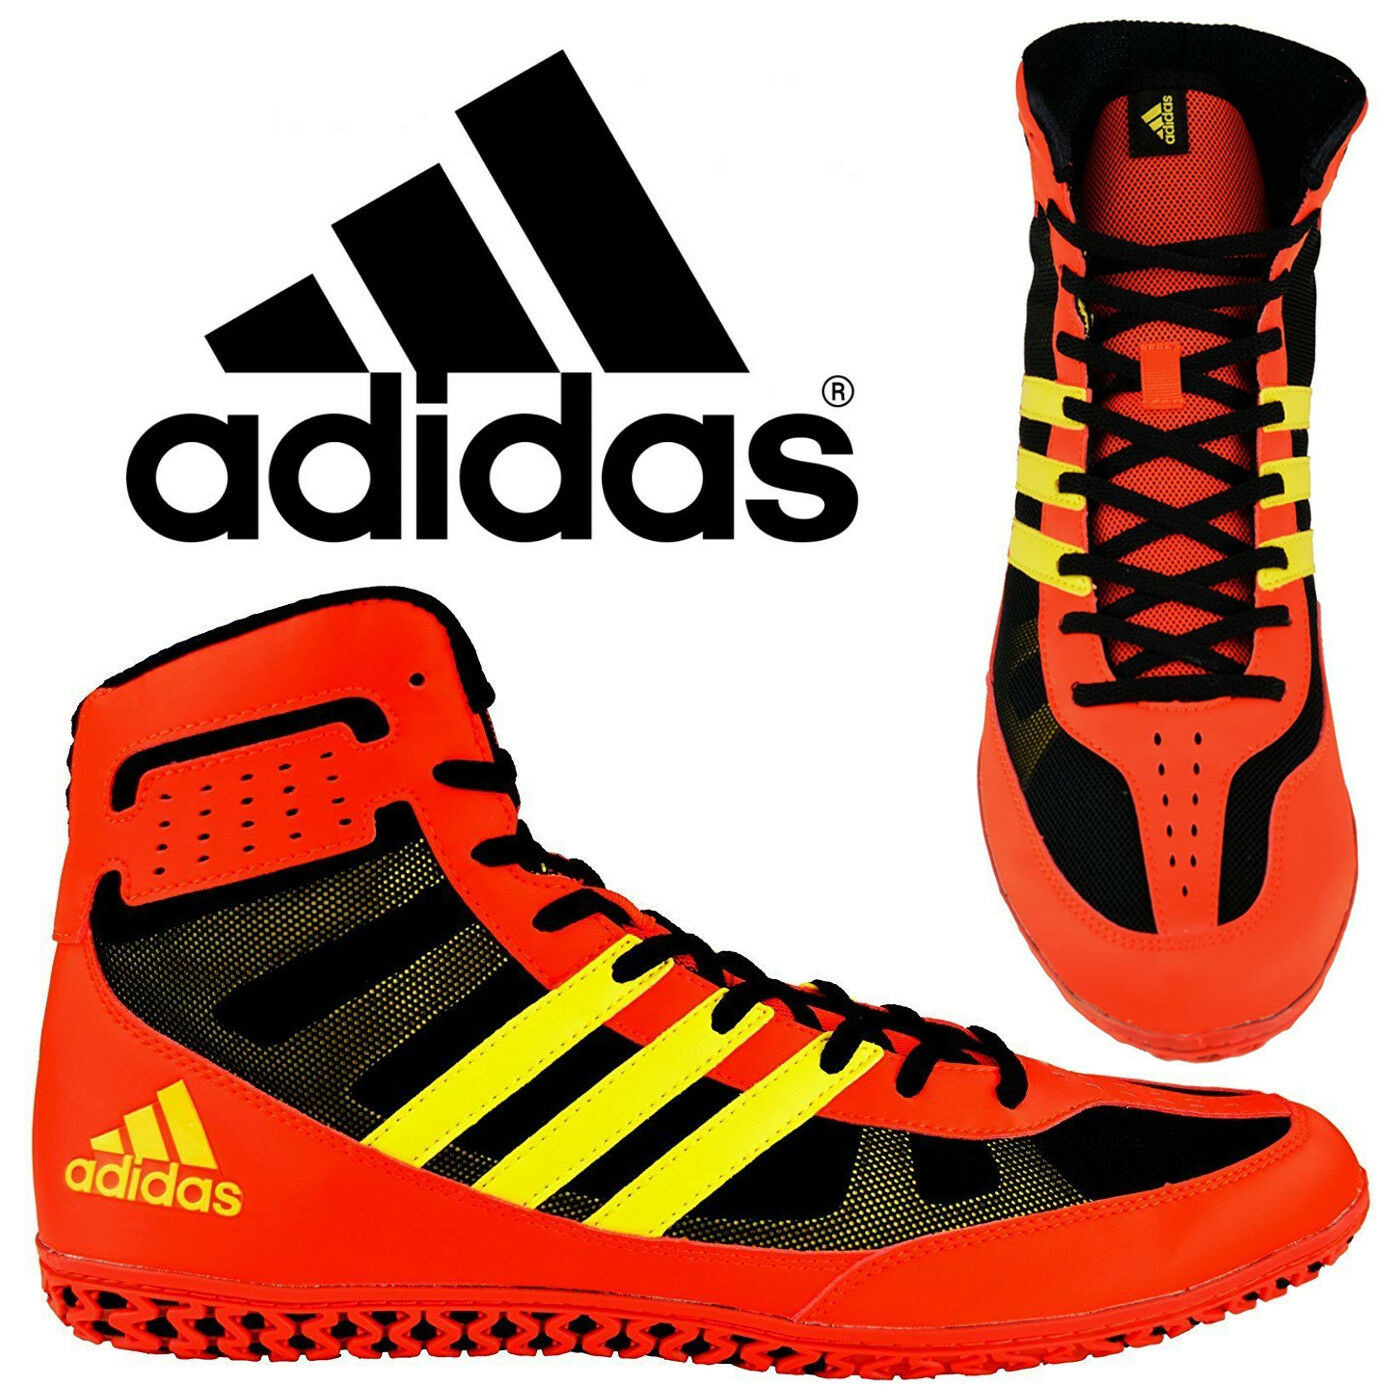 Adidas Mat Wizard 3.1 Red Red Red Yellow Wrestling Shoes Specialist Light Weight Control 0a623d